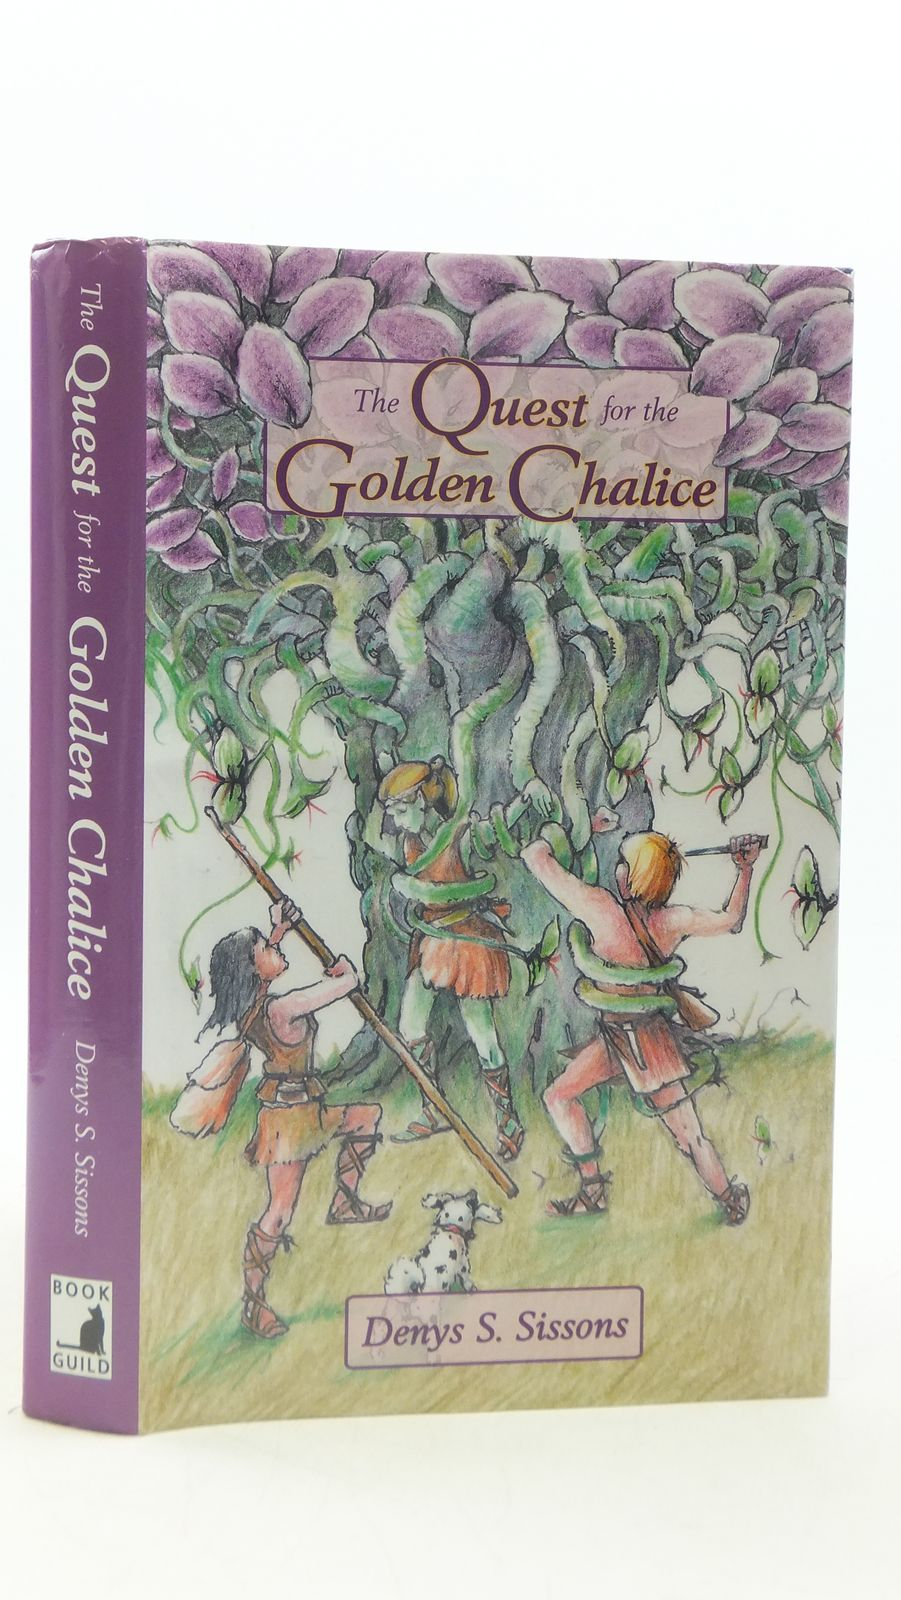 Photo of THE QUEST FOR THE GOLDEN CHALICE- Stock Number: 2111623